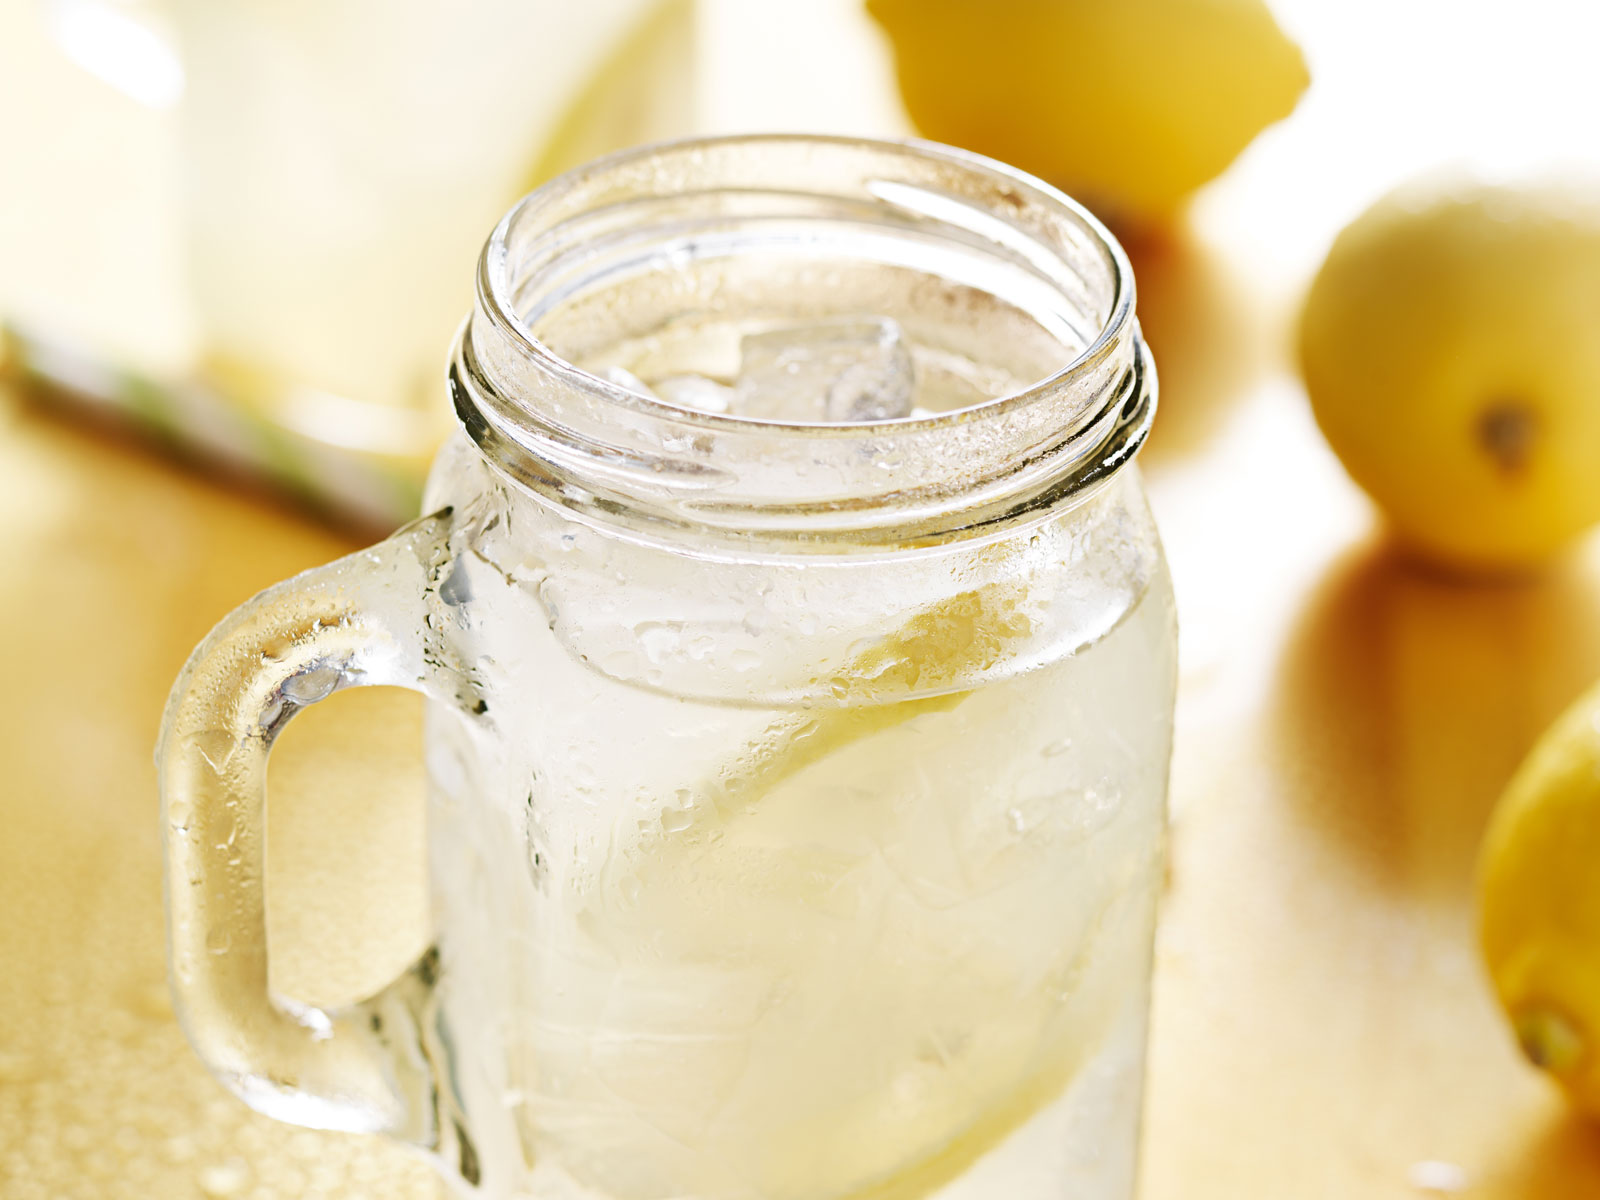 Applebee's March Drink Special Is an Absolut Vodka Lemonade (But It'll Cost You Double)